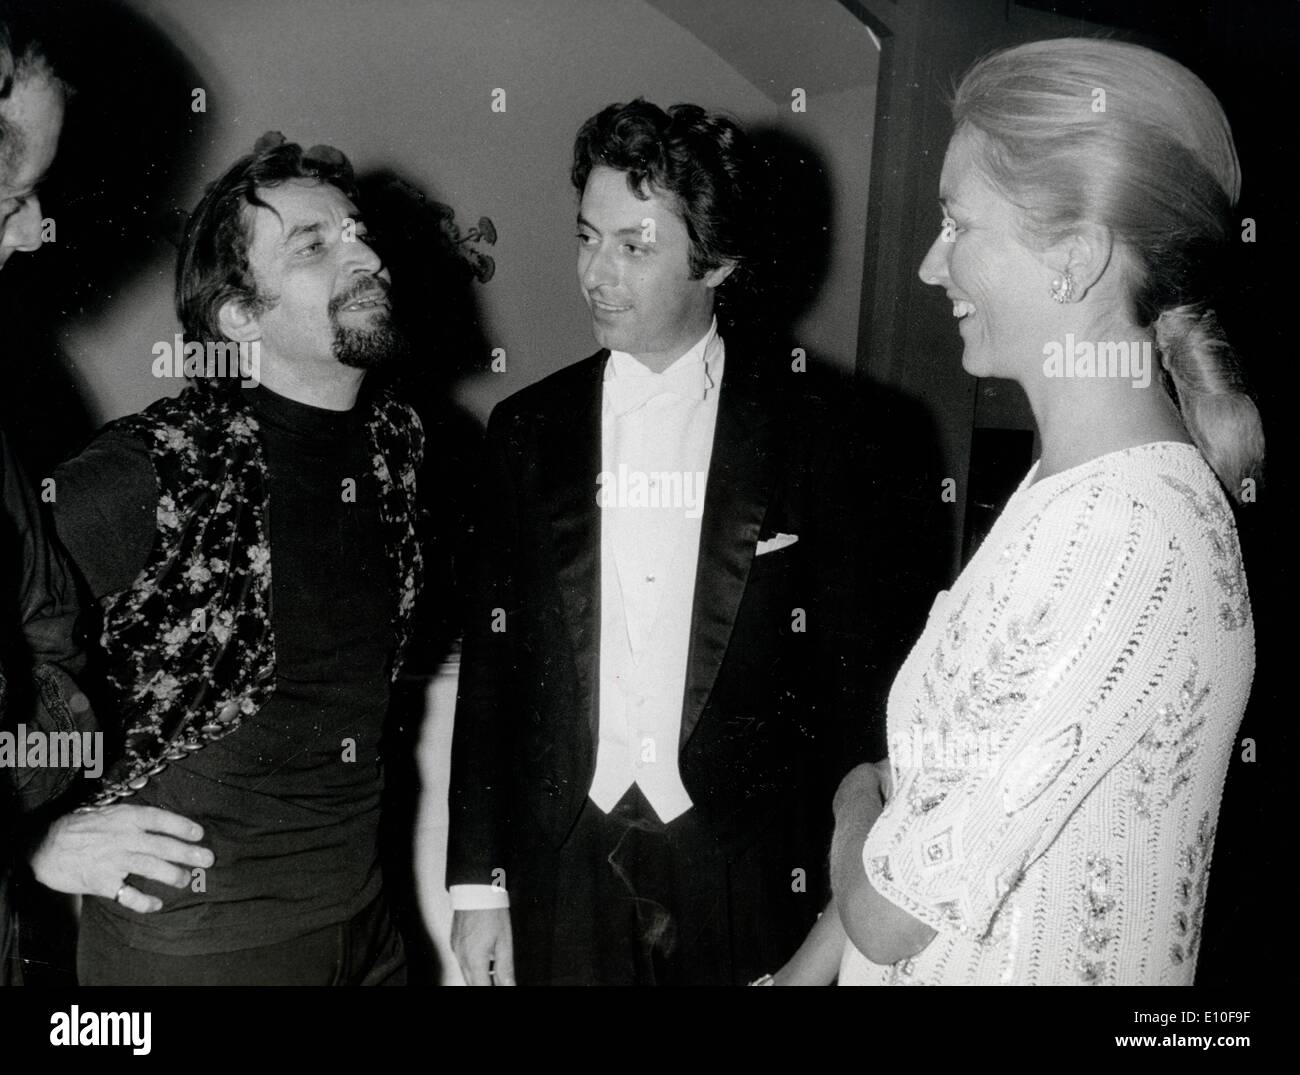 Choreographer Maurice Bejart chats with royals - Stock Image